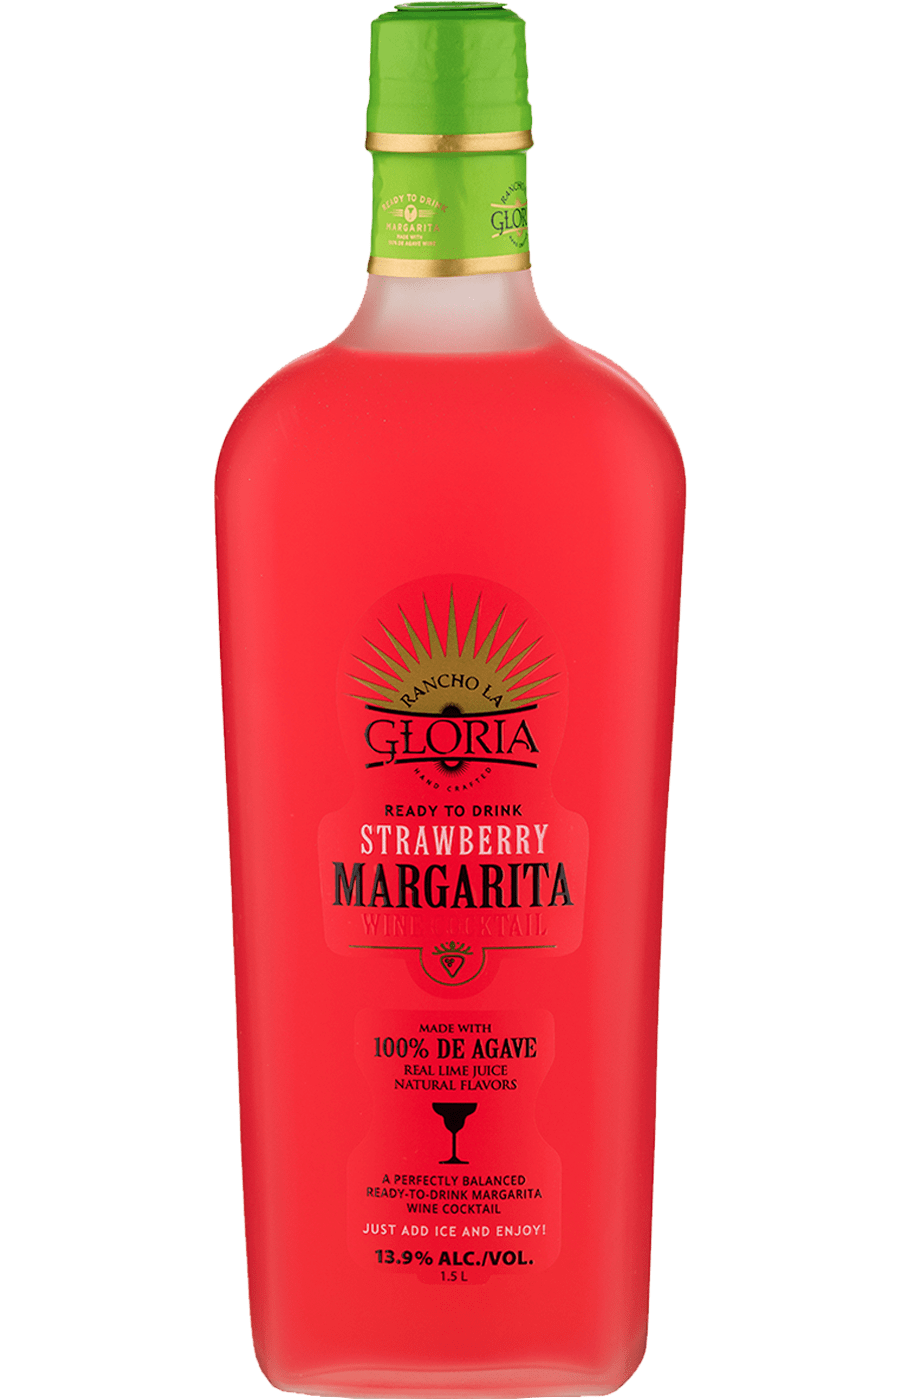 rancho la gloria strawberry margarita 1.5L 1